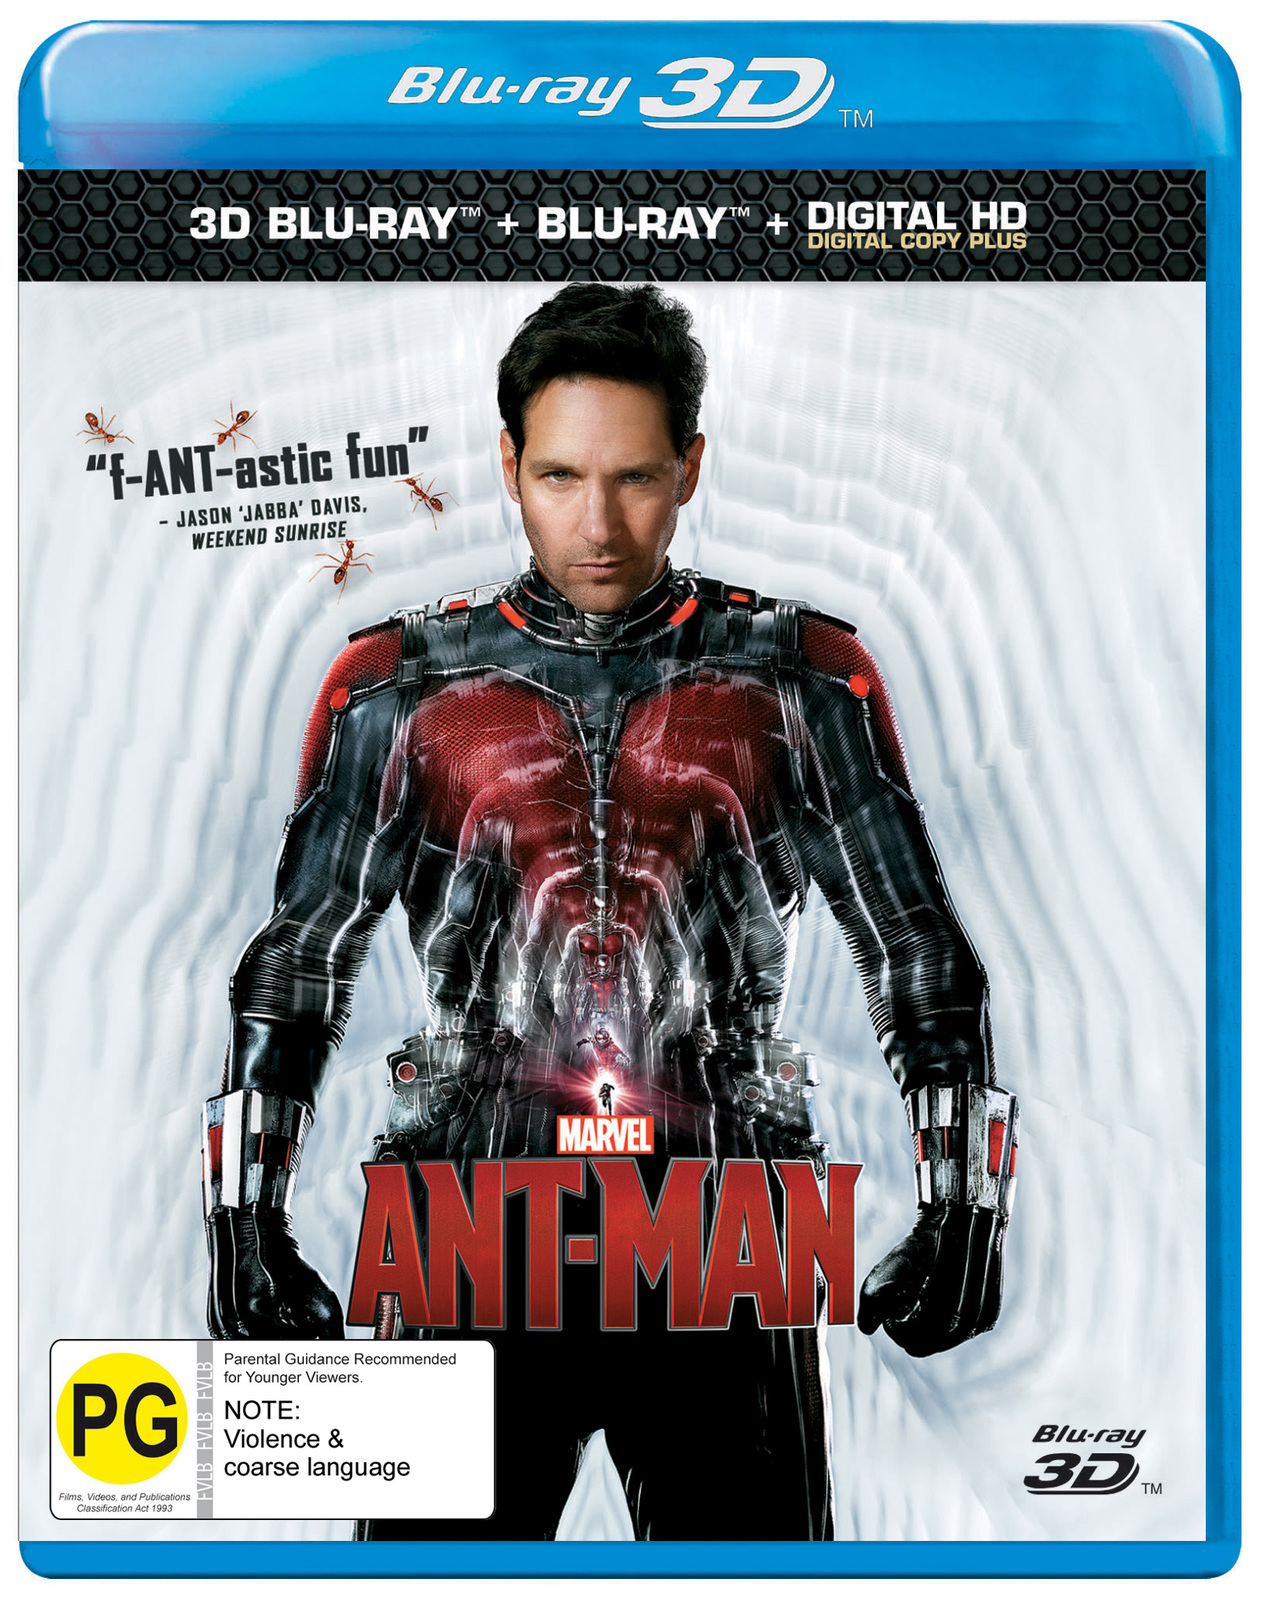 Ant-Man on Blu-ray, 3D Blu-ray image